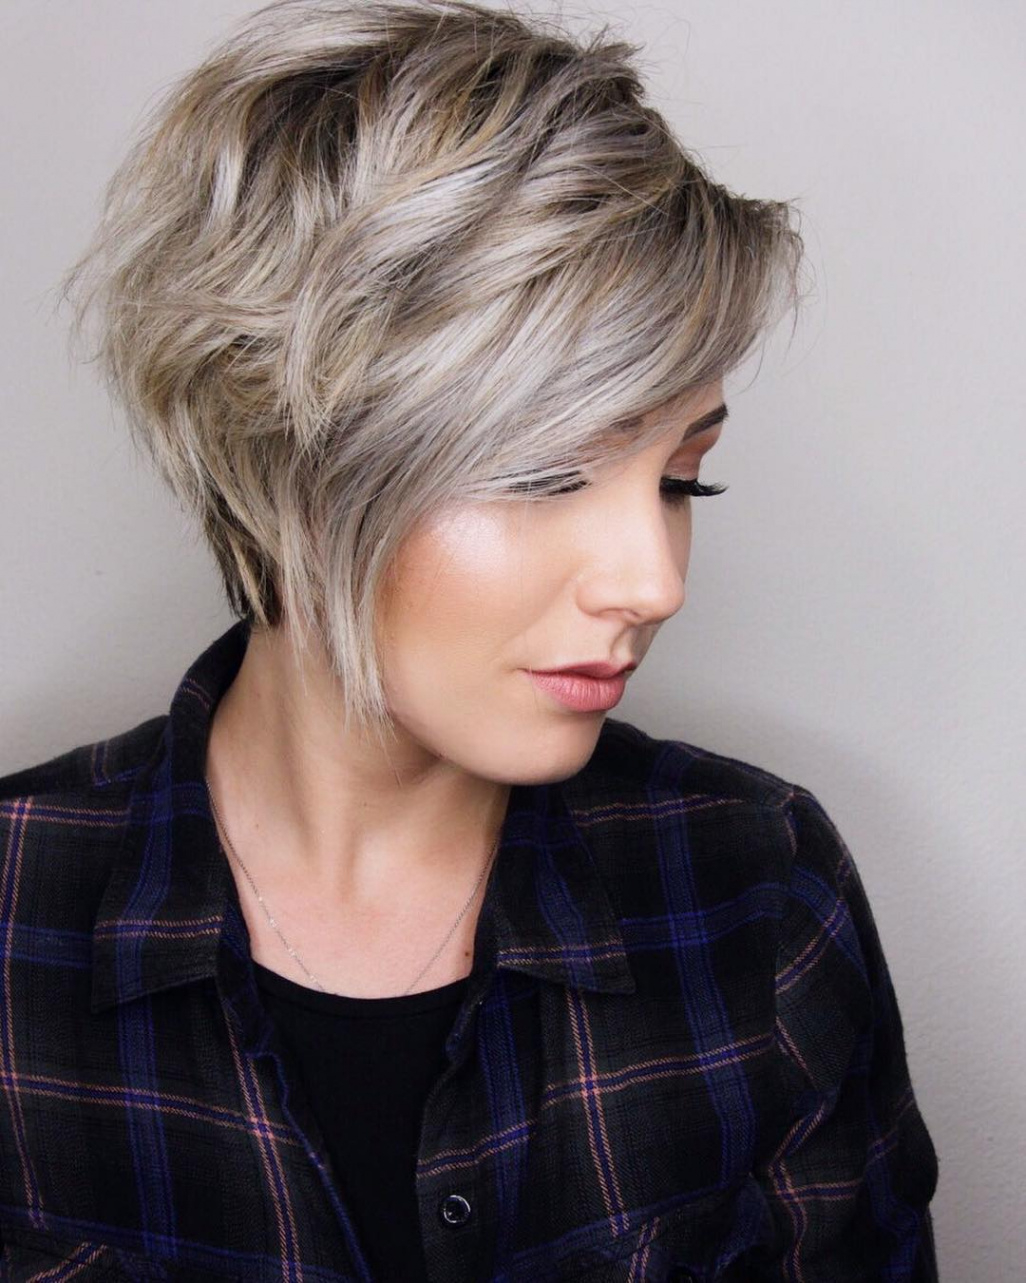 10 Trendy Layered Short Haircut Ideas For 2017 2018 'extra